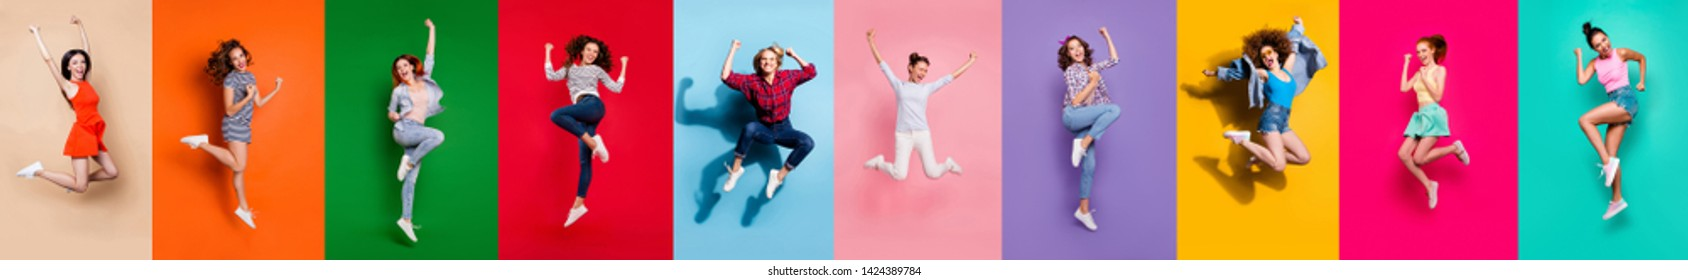 Collage of ten charming glad carefree nice attractive shiny modern delightful girls millennials person youngsters having good mood flying air isolated over colorful background travel summer concept